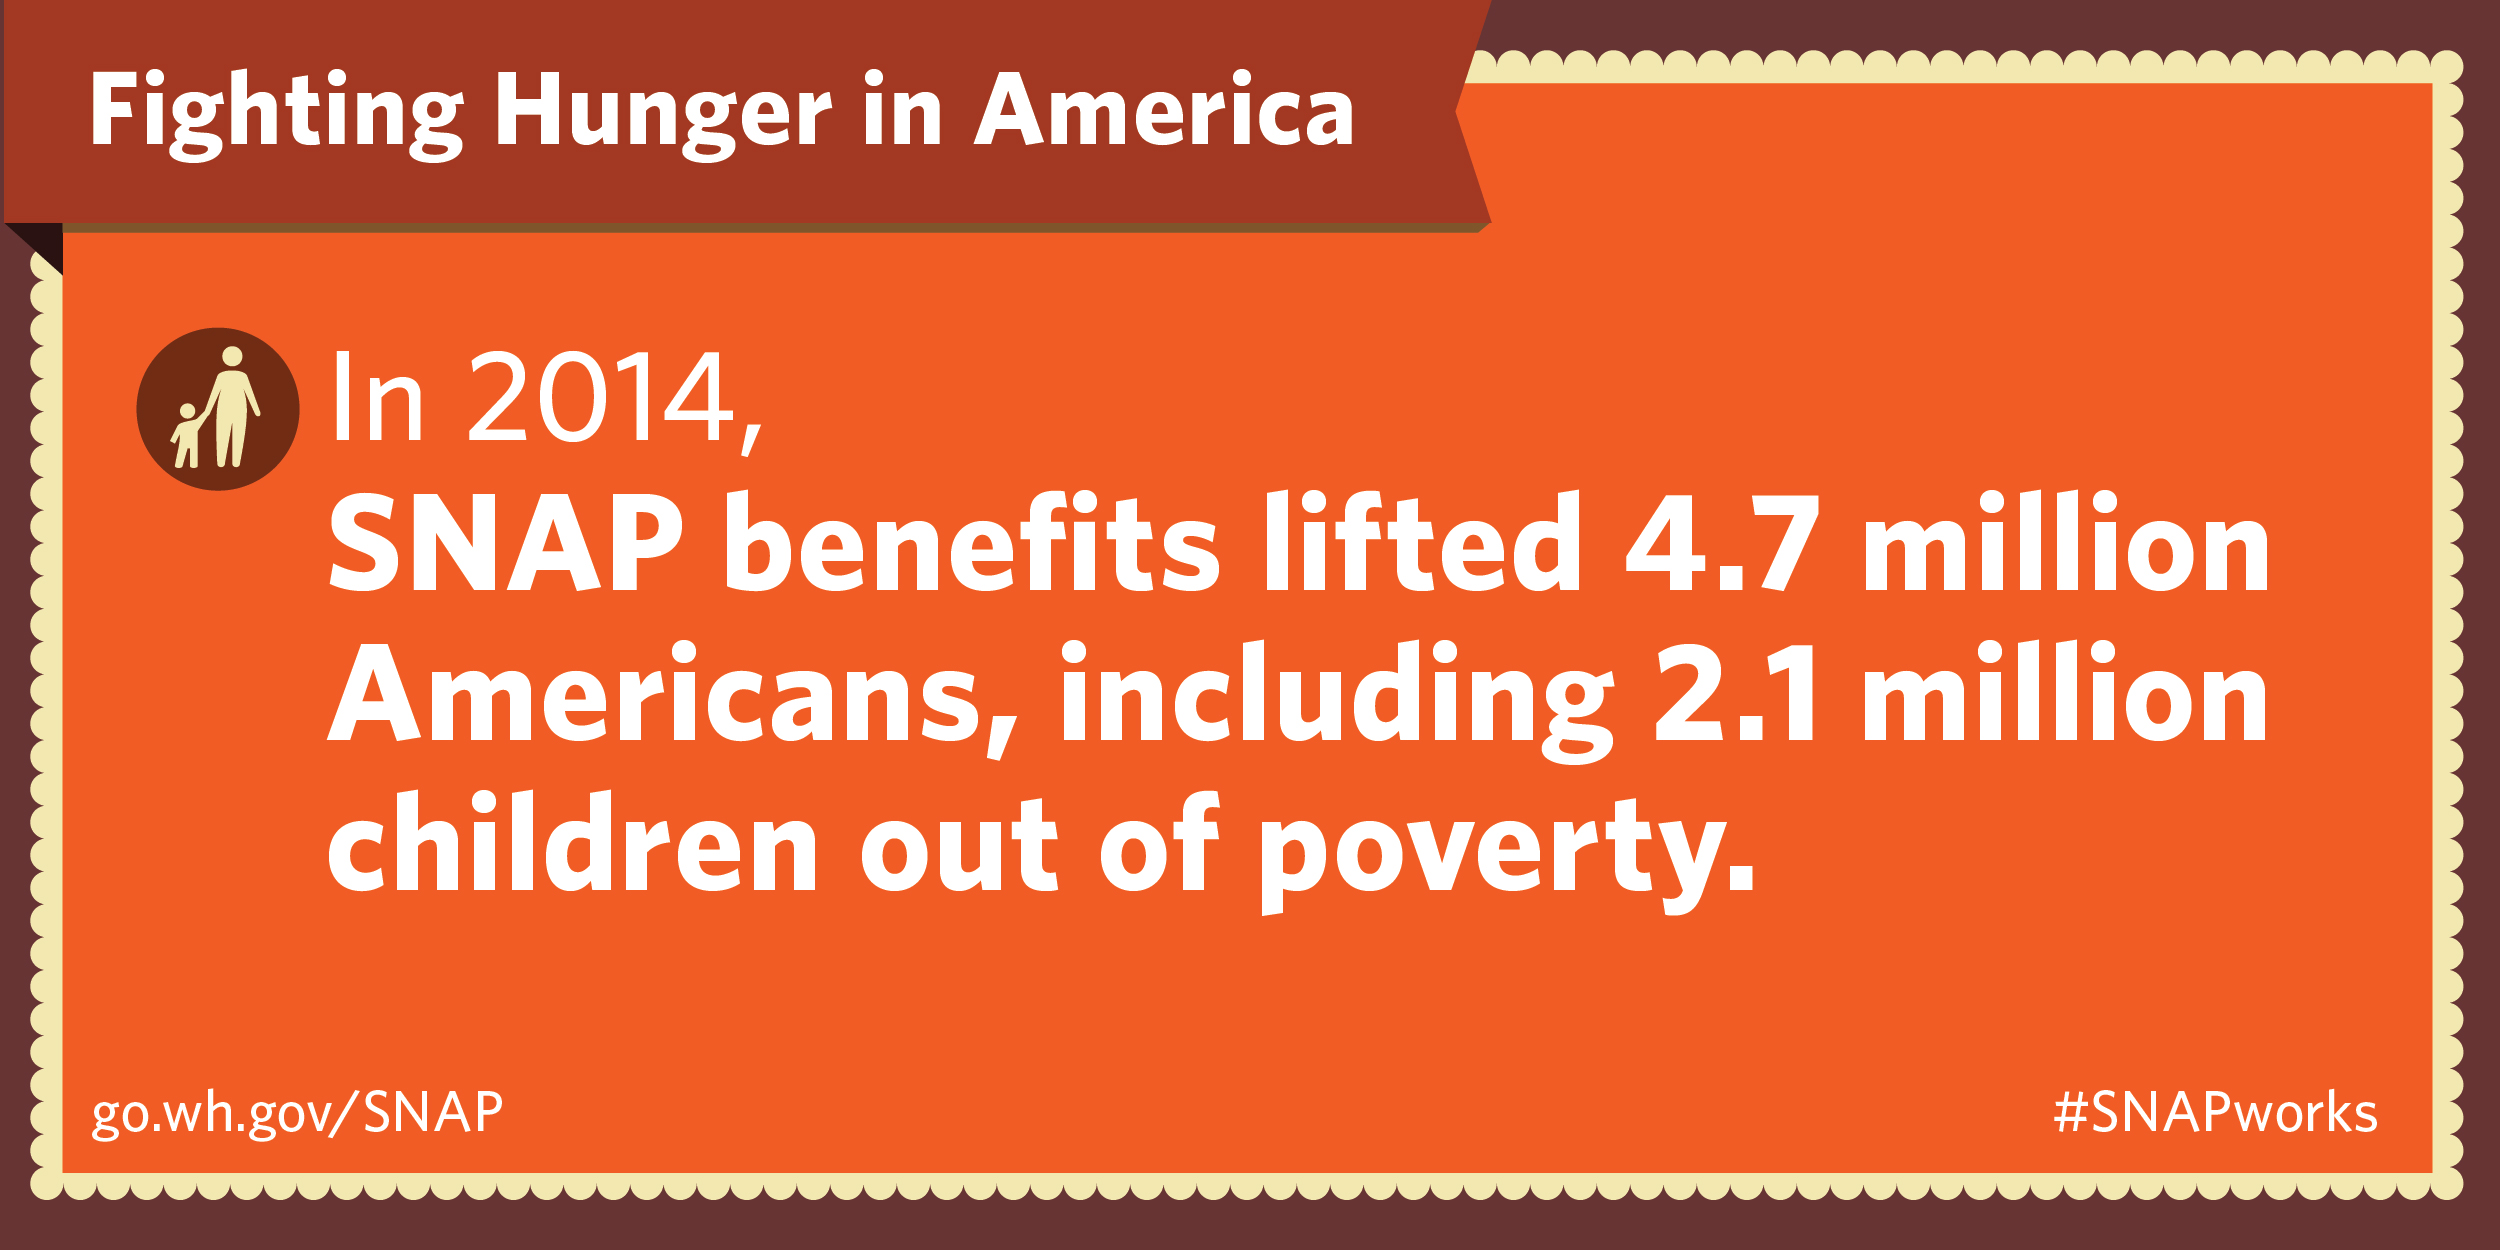 SNAP lifted at least 4.7 million people out of poverty - including 2.1 million children.